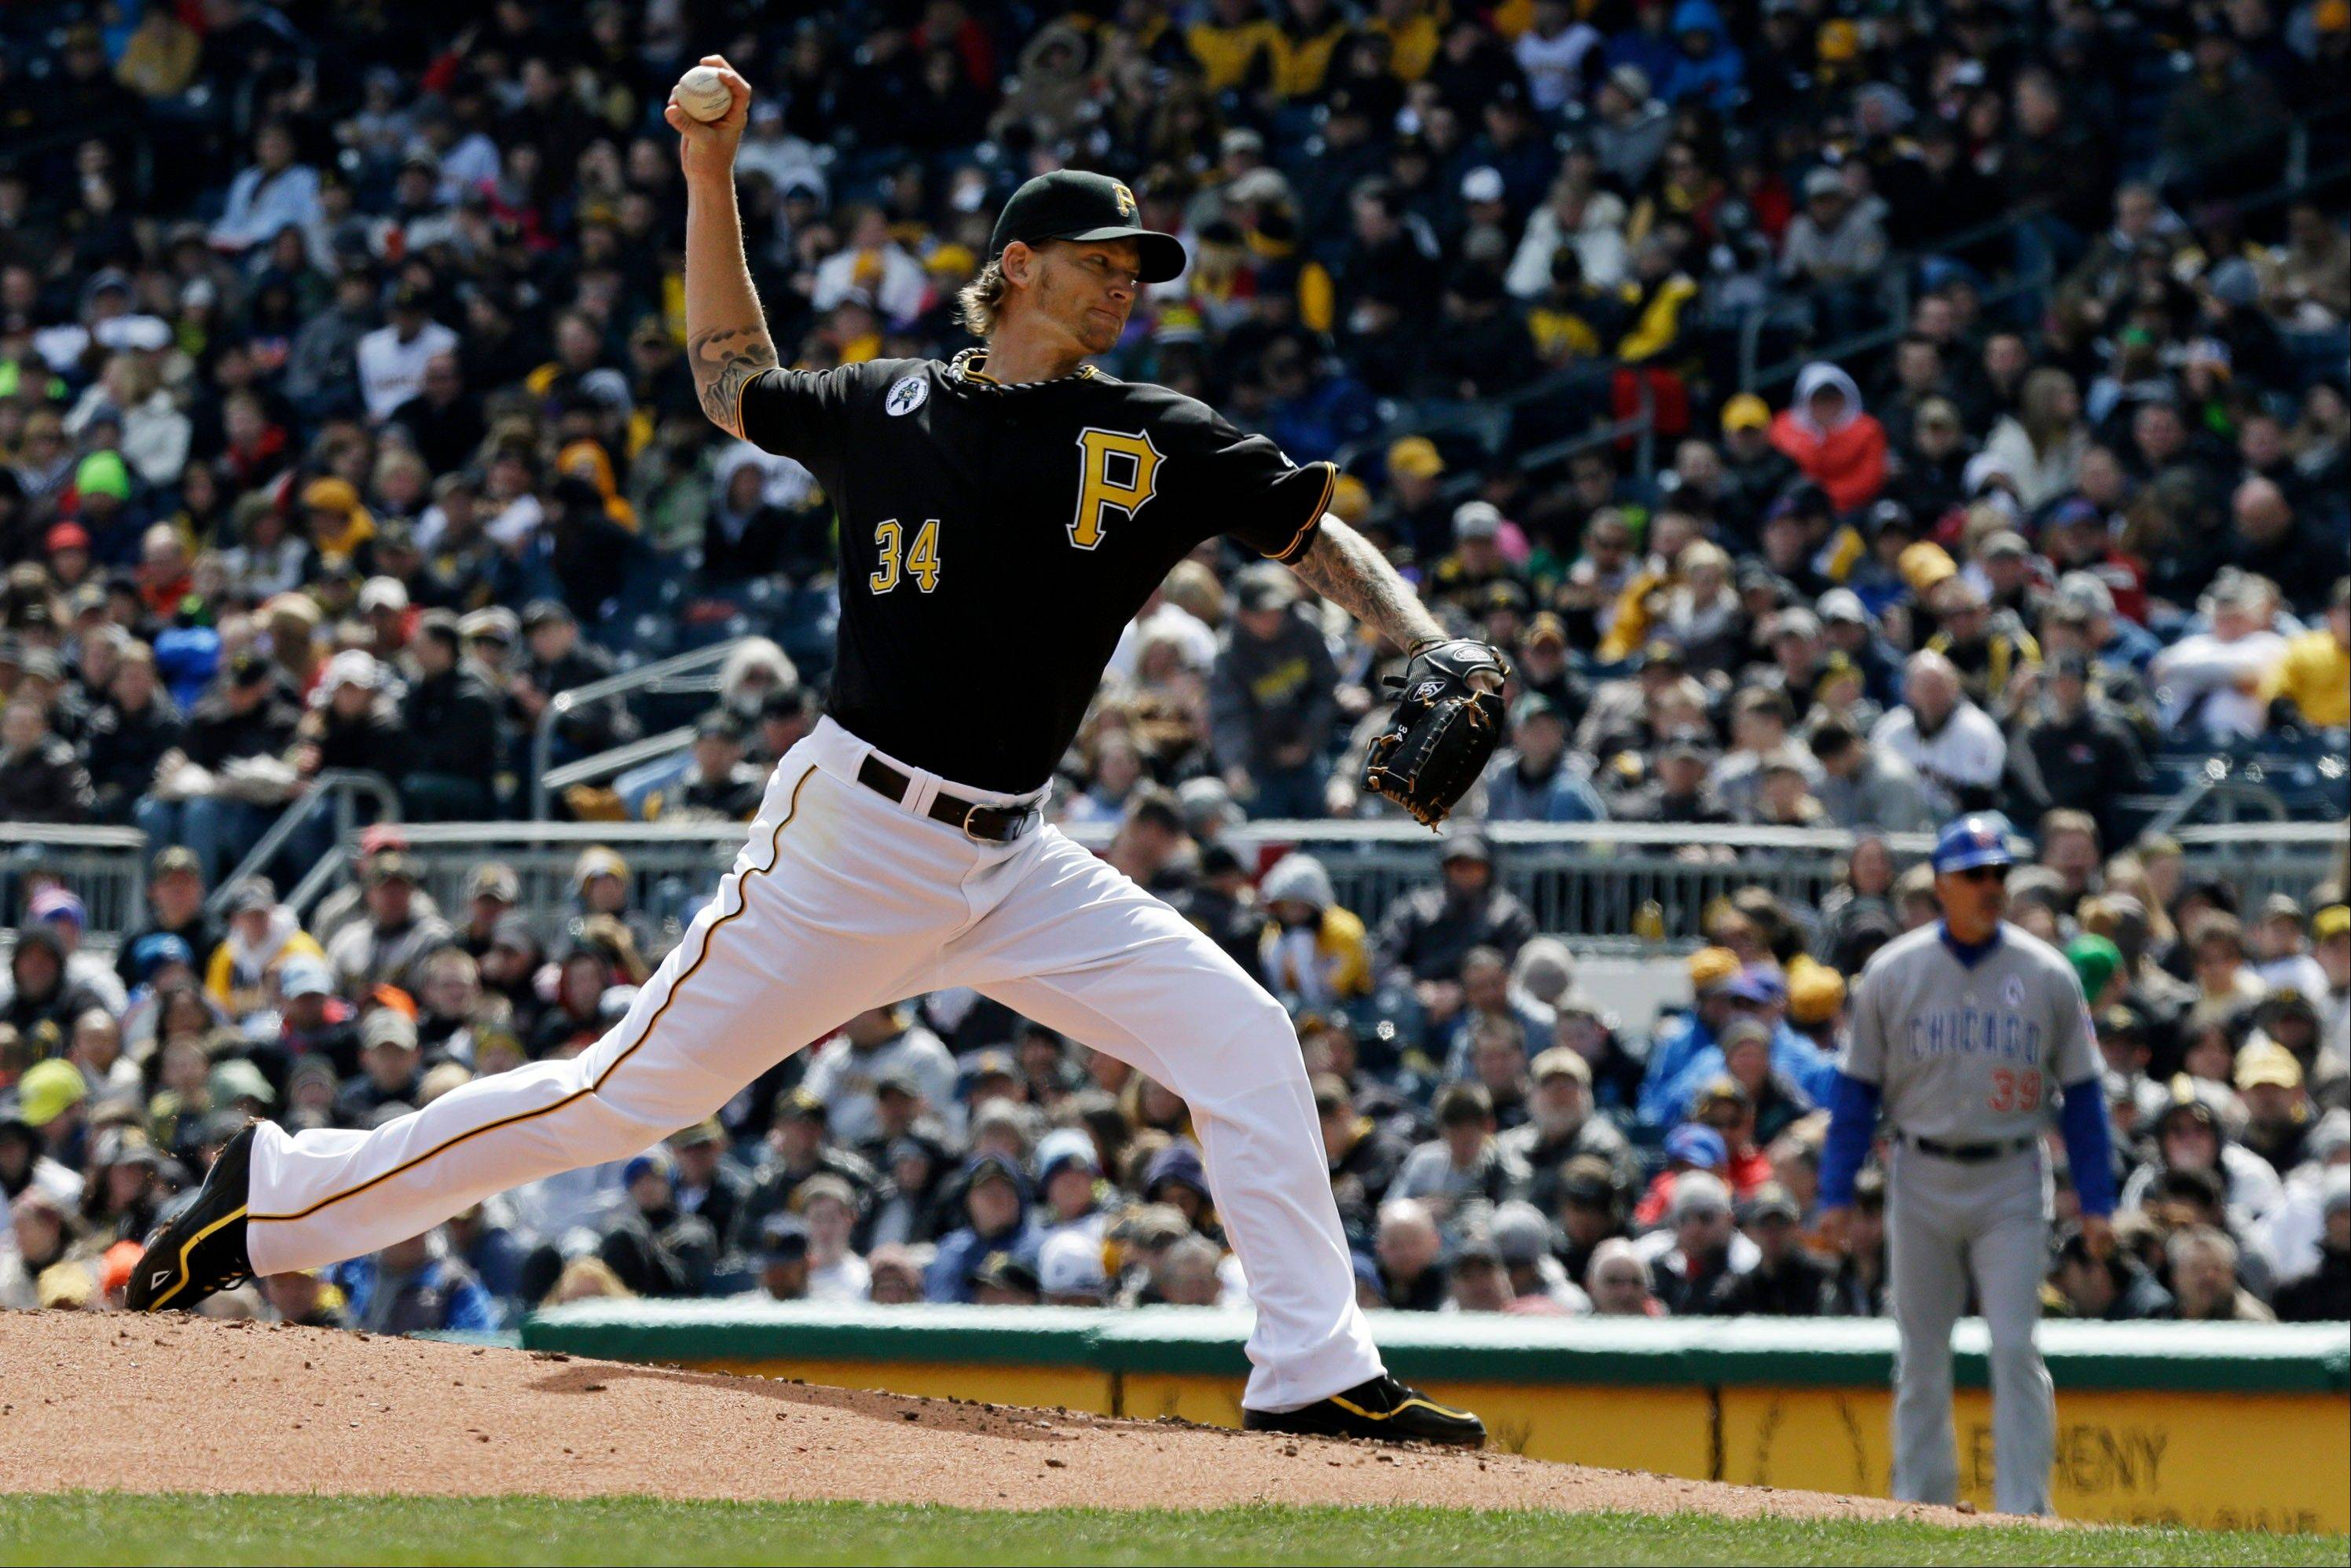 Pittsburgh Pirates starting pitcher A.J. Burnett delivers during the second inning.